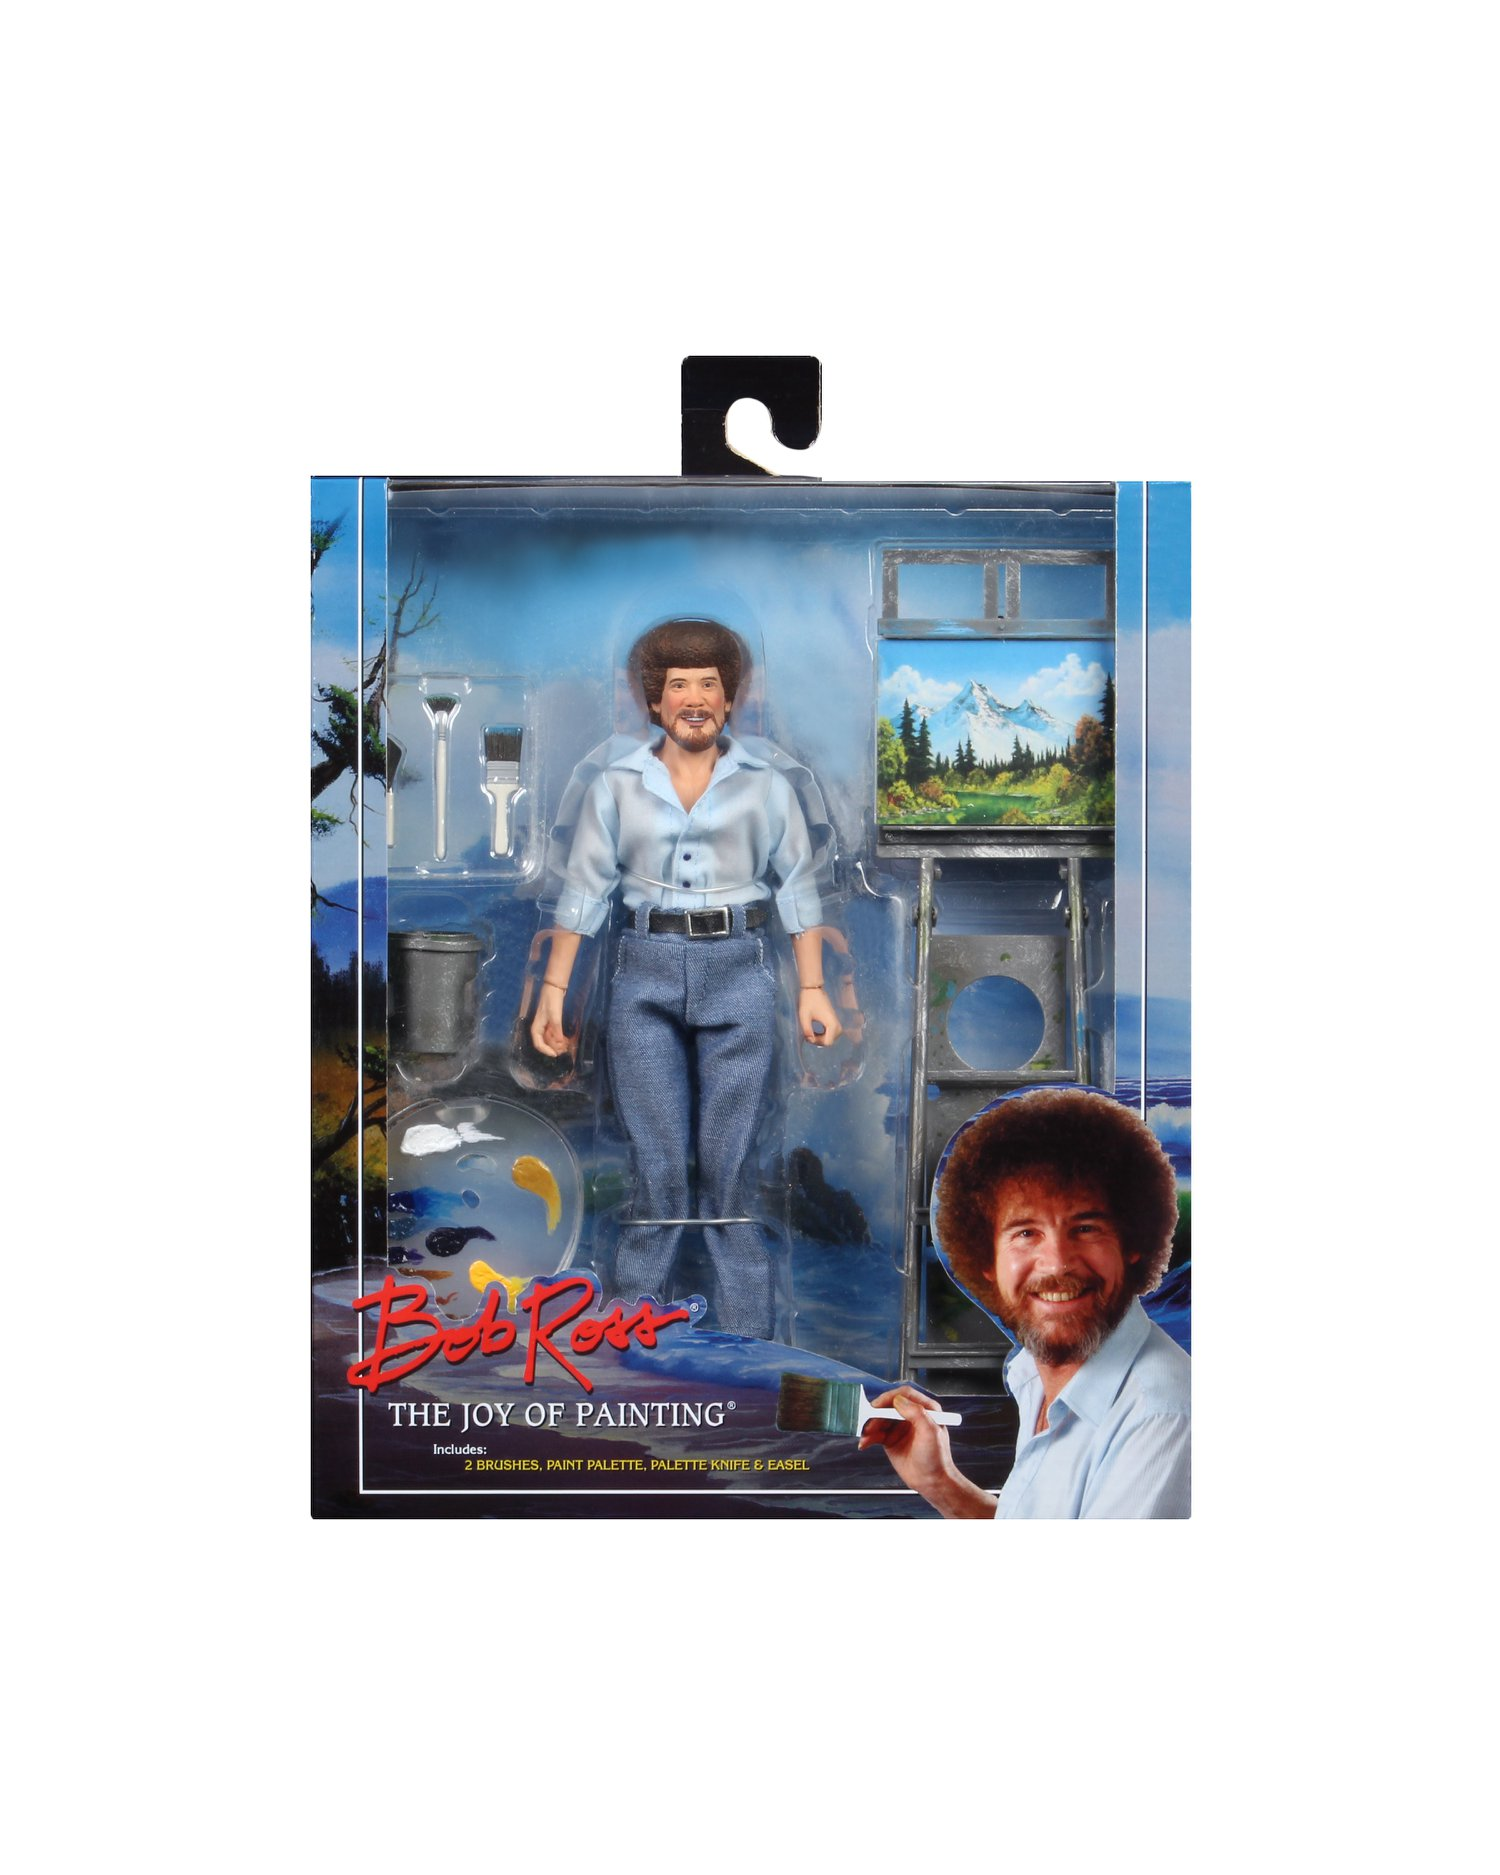 Neca Toys Bob Ross 8 Clothed Figure Available Now